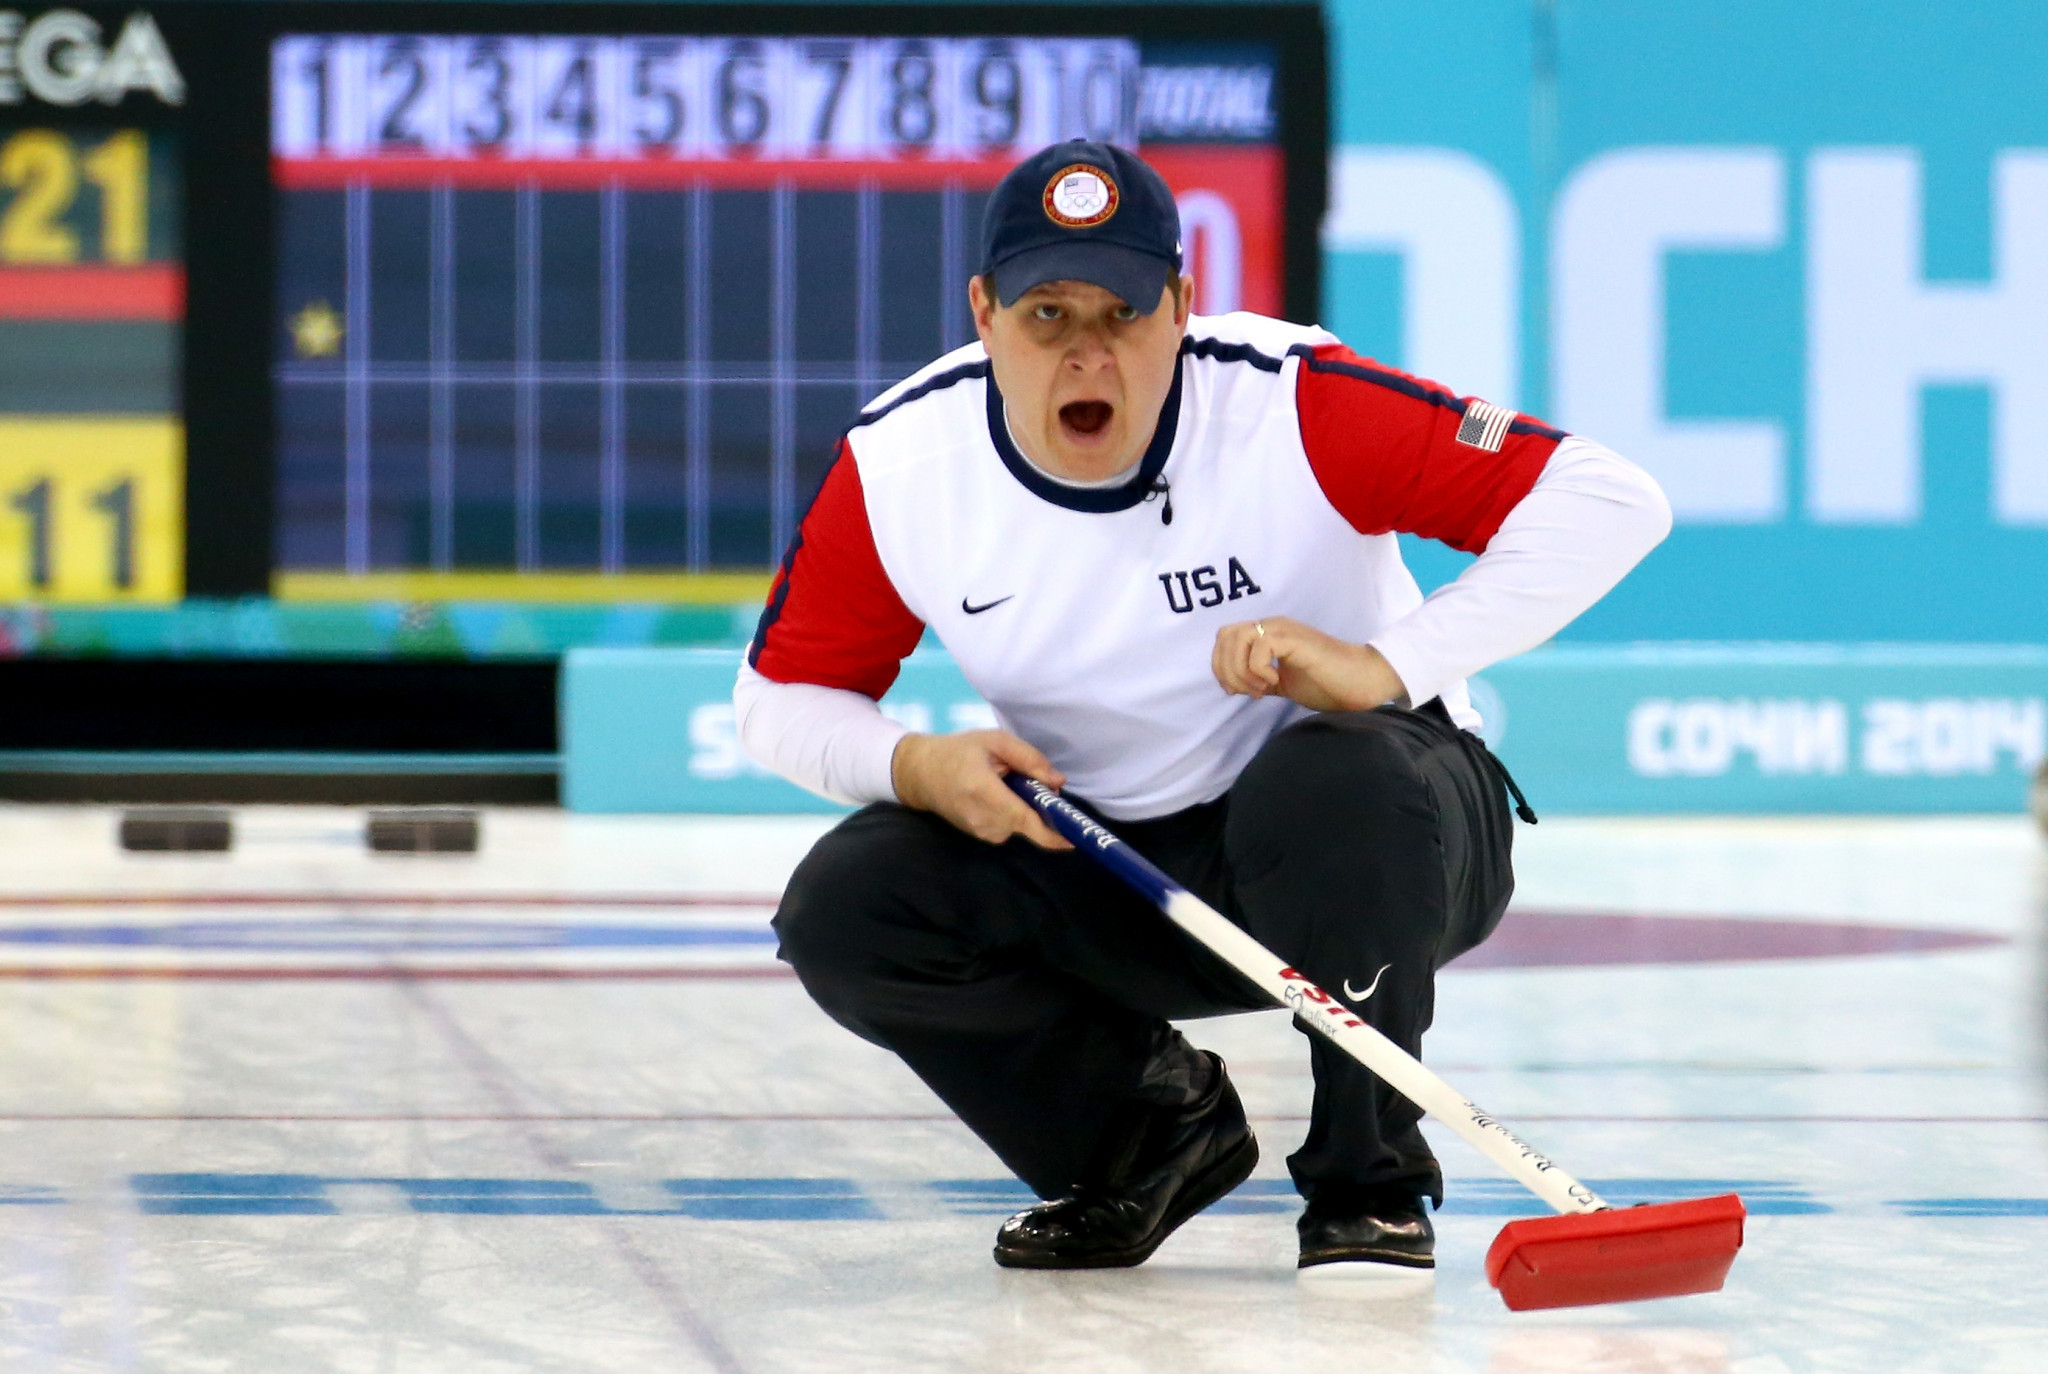 John Shuster in a strong position to make it to his fourth Olympics